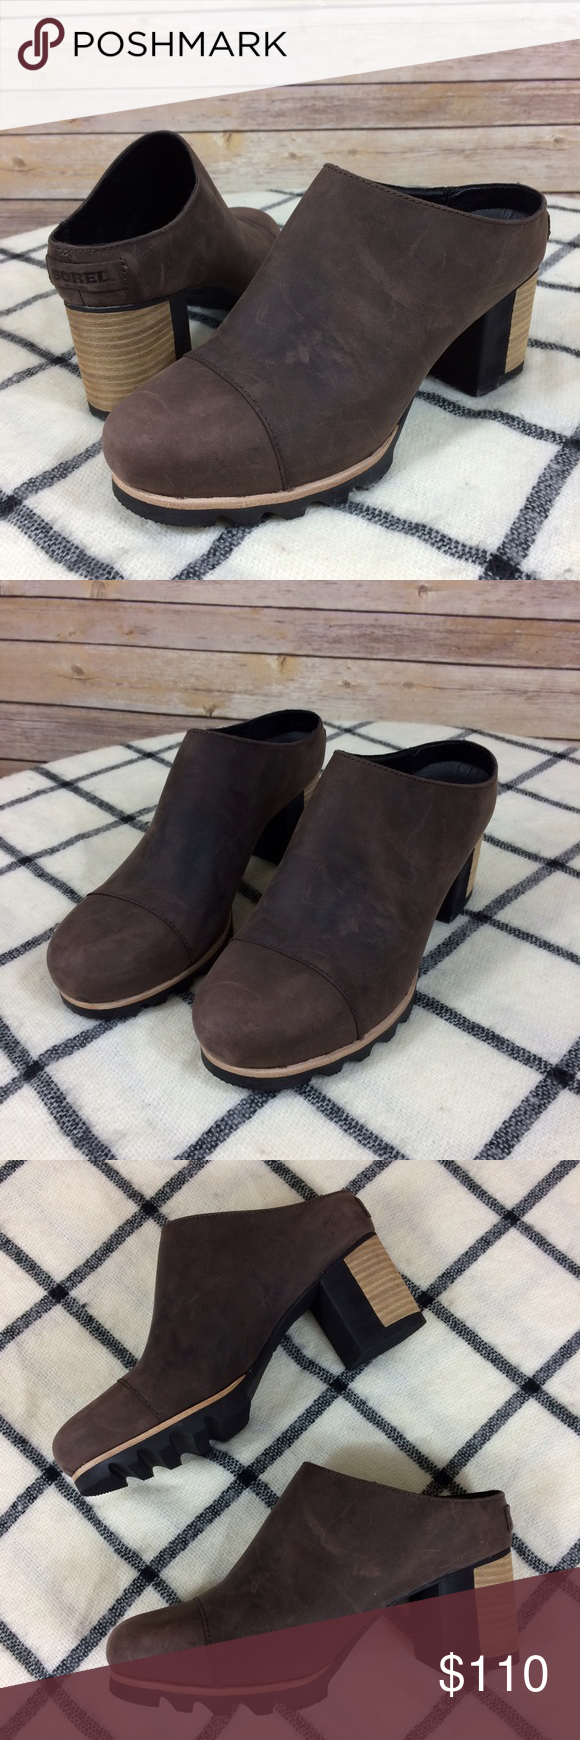 "Sorel Addington Mule 7.5 Leather Open Back Shoes Only worn one time, they have some light scratching from storage--see photos. Size 7.5. 2.75"" stacked heel. Sorel Shoes Mules & Clogs"